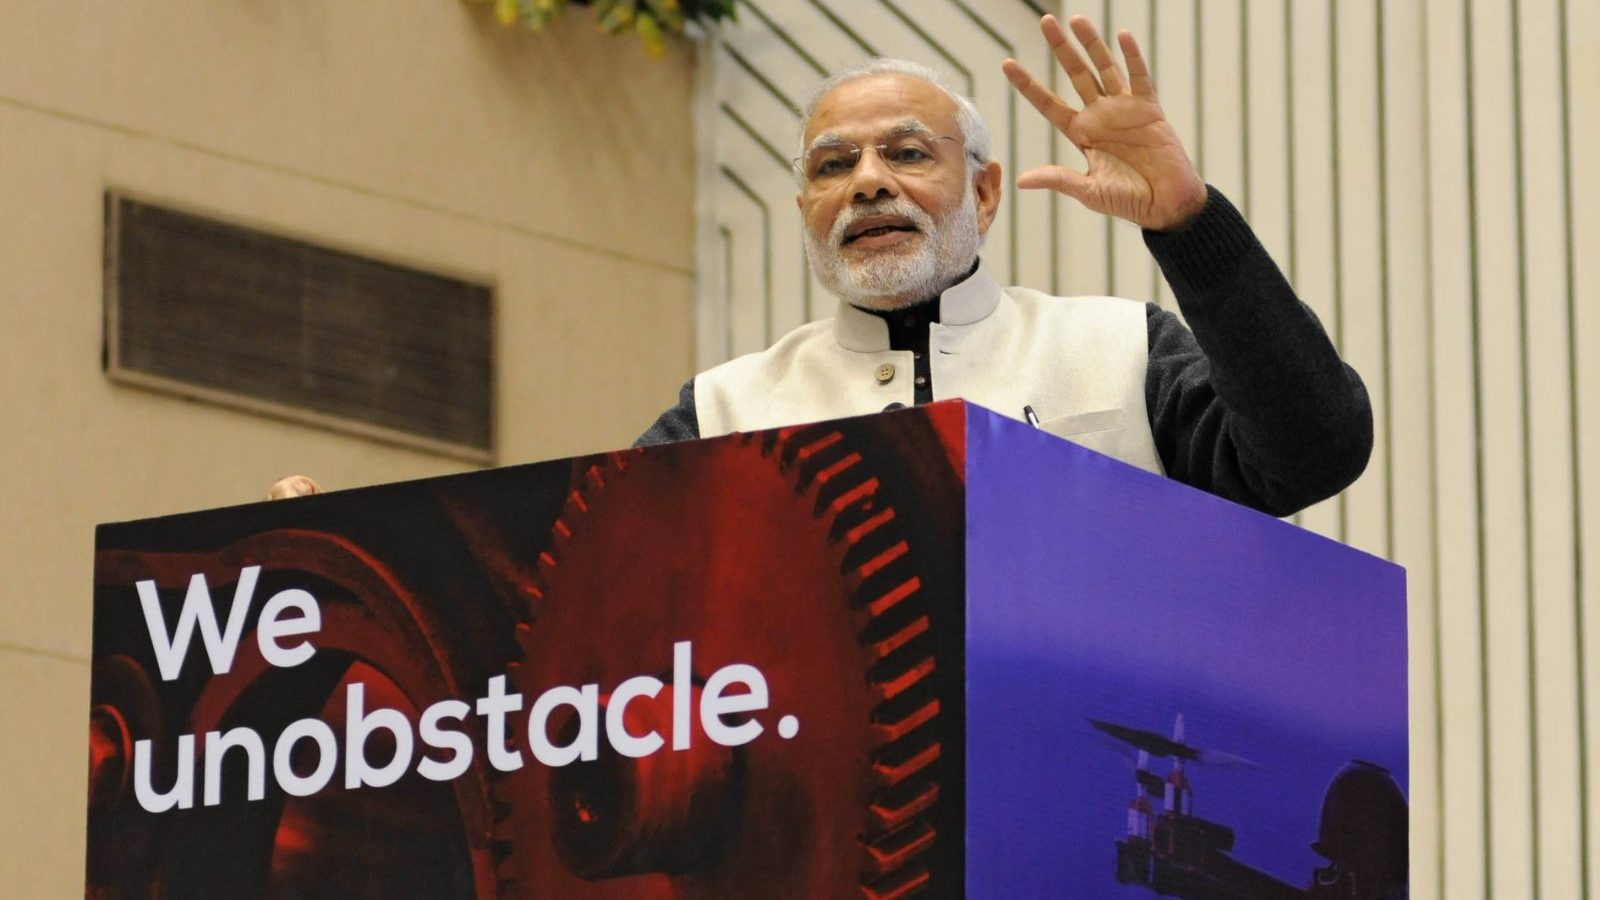 epa05105310 Indian Prime Minister Narendra Modi delivers a speech during 'Start Up India' event to launch the initiative and unveil the startup Action Plan by him in New Delhi, India, 16 January 2016. Centred around the entrepreneurial spirit of India, the Start-Up India plan is expected to boost the entrepreneurship in the country. The Indian government said it will introduce friendly tax measures and easy financing for start-ups to boost entrepreneurship at the grass-root level. With 4,200 firms, India already ranks third in the world in terms of the number of start-ups, behind the United States and Britain.  EPA/STR